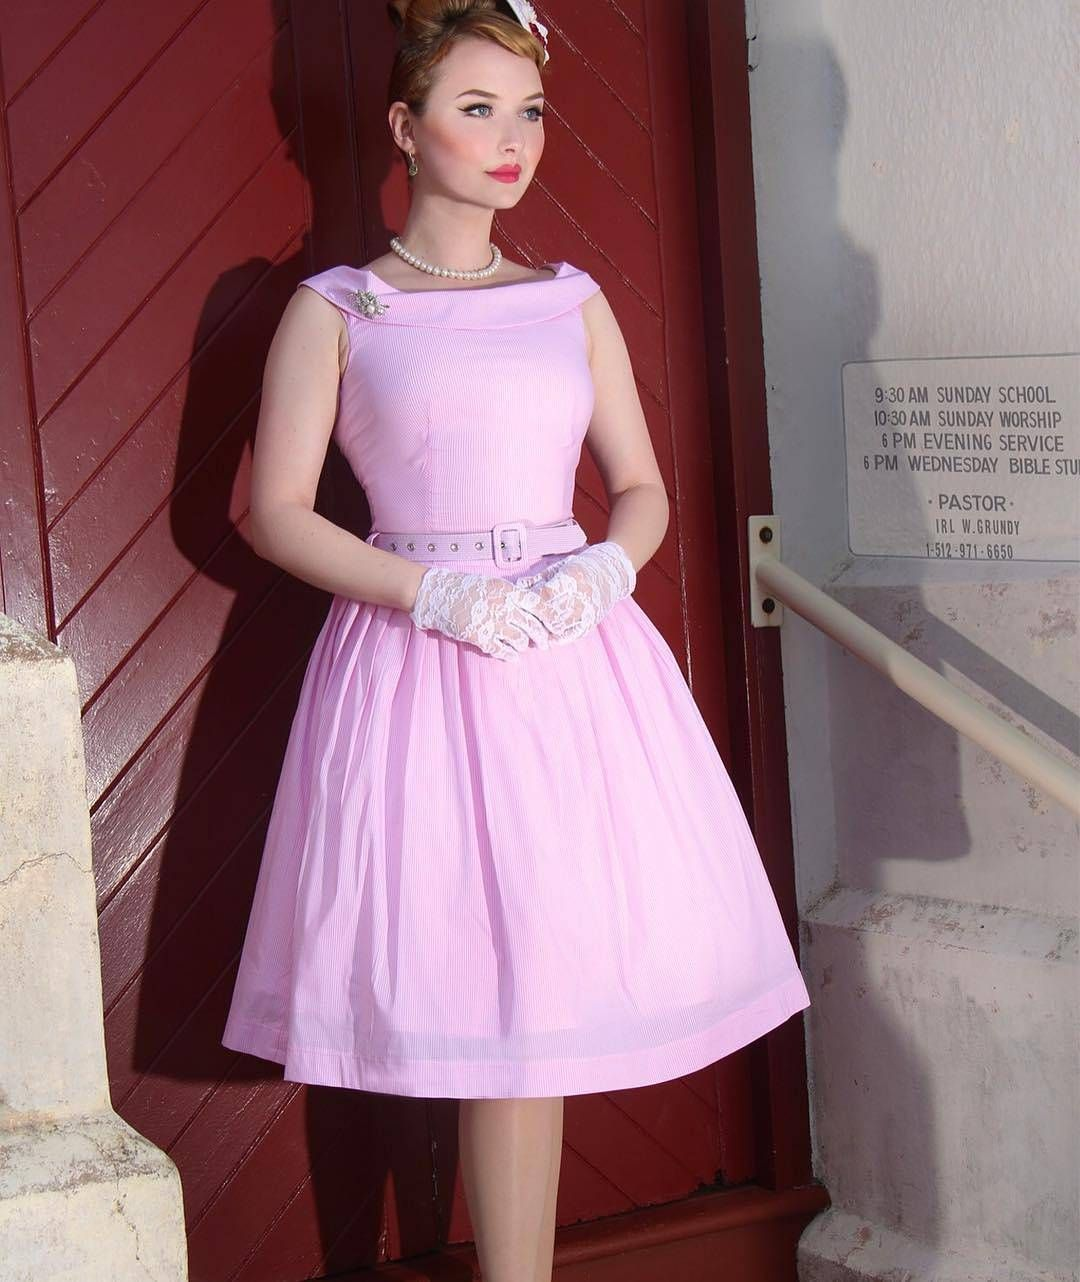 New Kitten D Amour Collection Sunday School Pinup Fashion Com Dresses Gorgeous Dresses Fashion